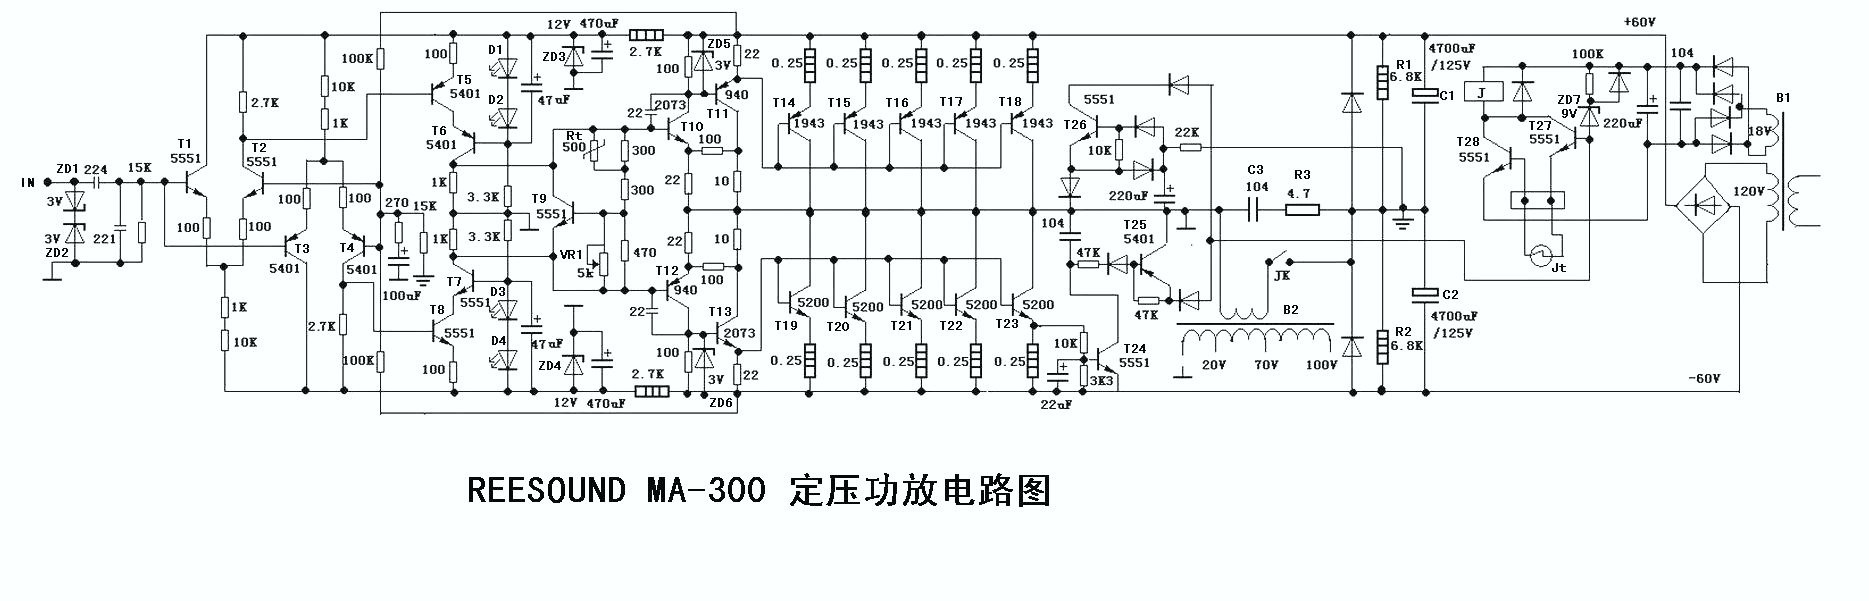 Sharp Sound Of Constant Pressure Reesound Ma 300 Power Amplifier Circuit 88 108 Mhz Fm Transmitter 1w